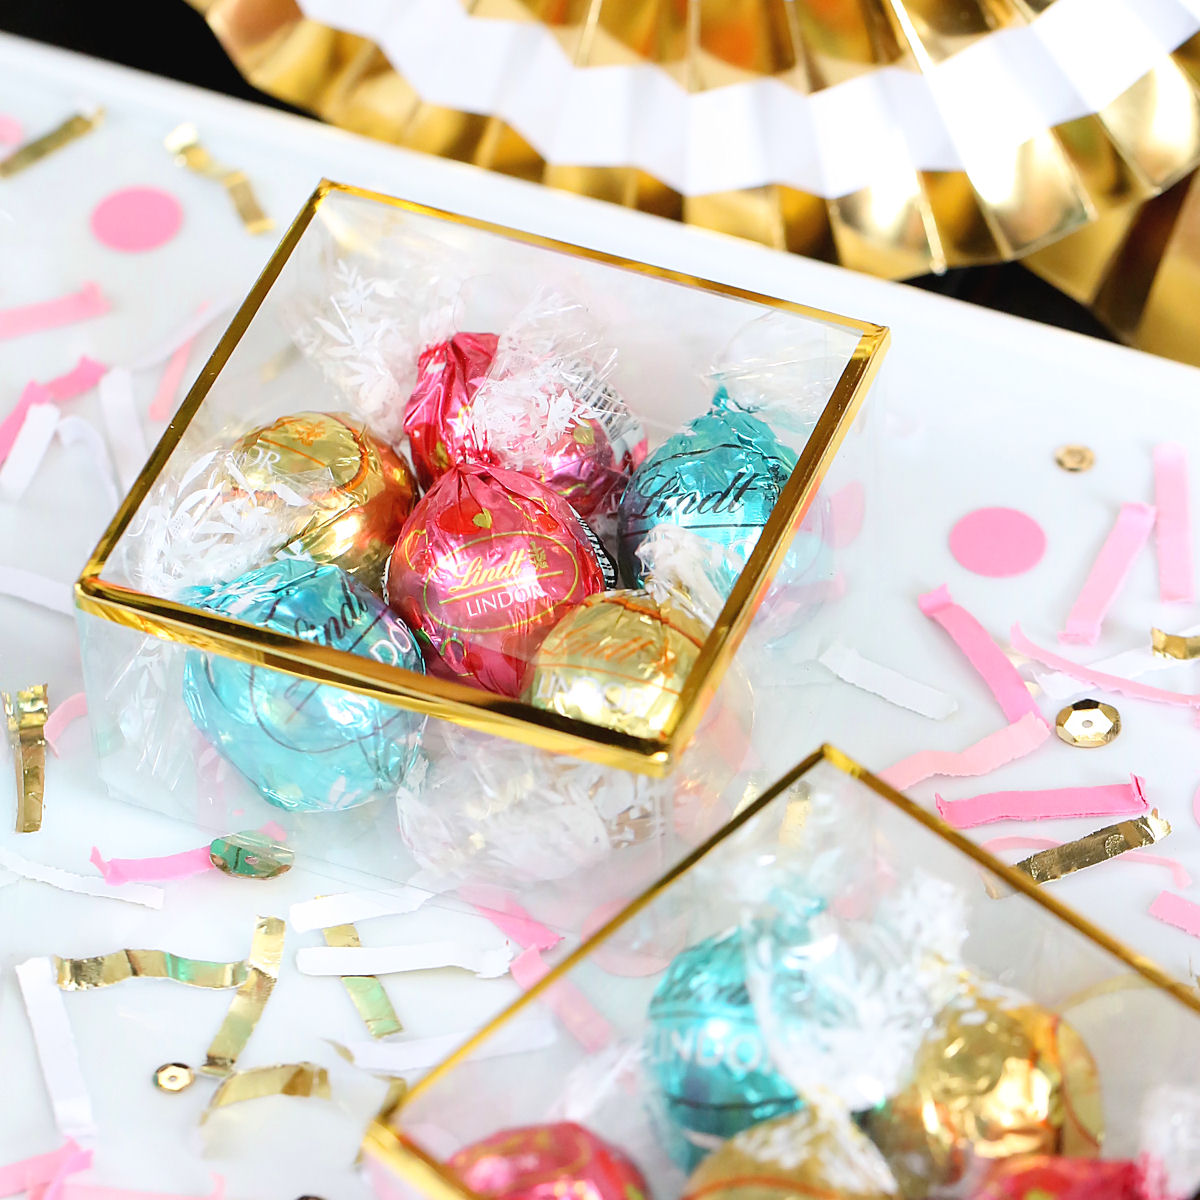 creative-diy-wedding-ideas-spring-lindt-chocolates.jpg